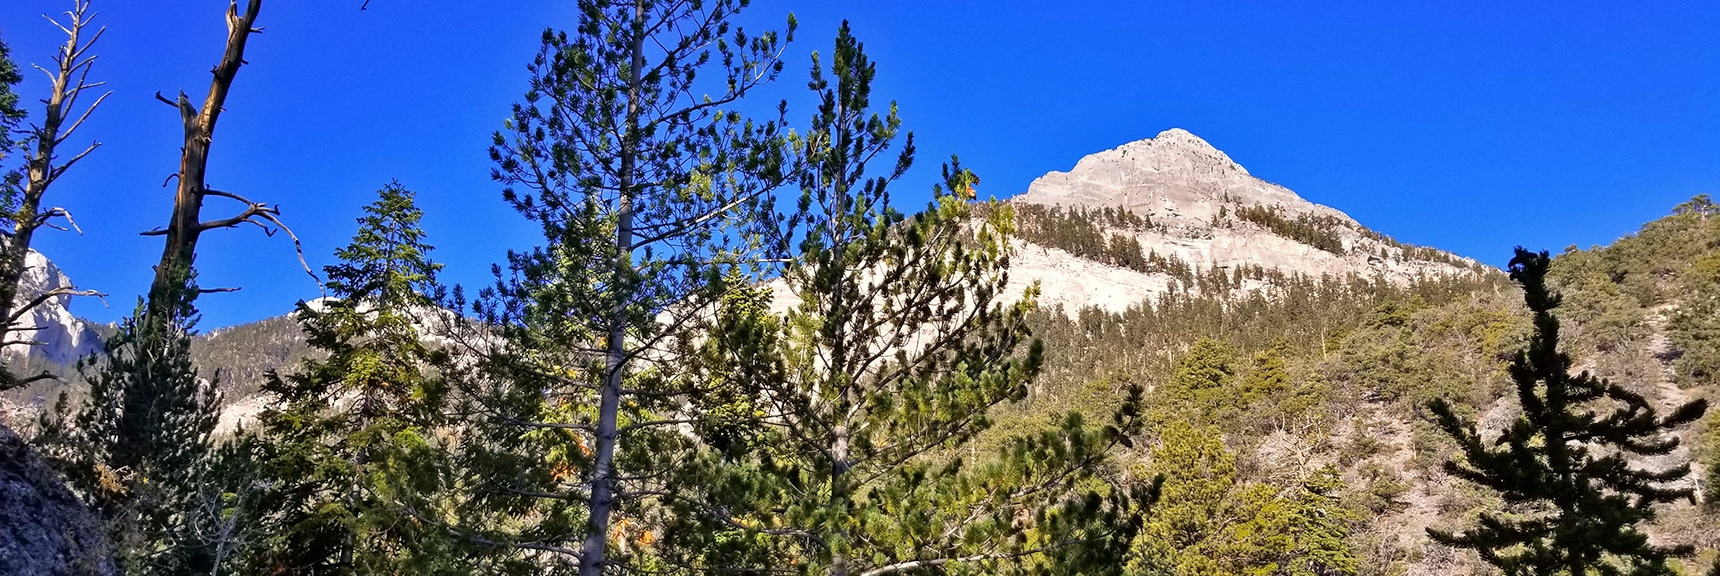 Mummy Mt. Head from Base of Canyon   Mummy Mountain's Head, Mt Charleston Wilderness, Spring Mountains, Nevada 009